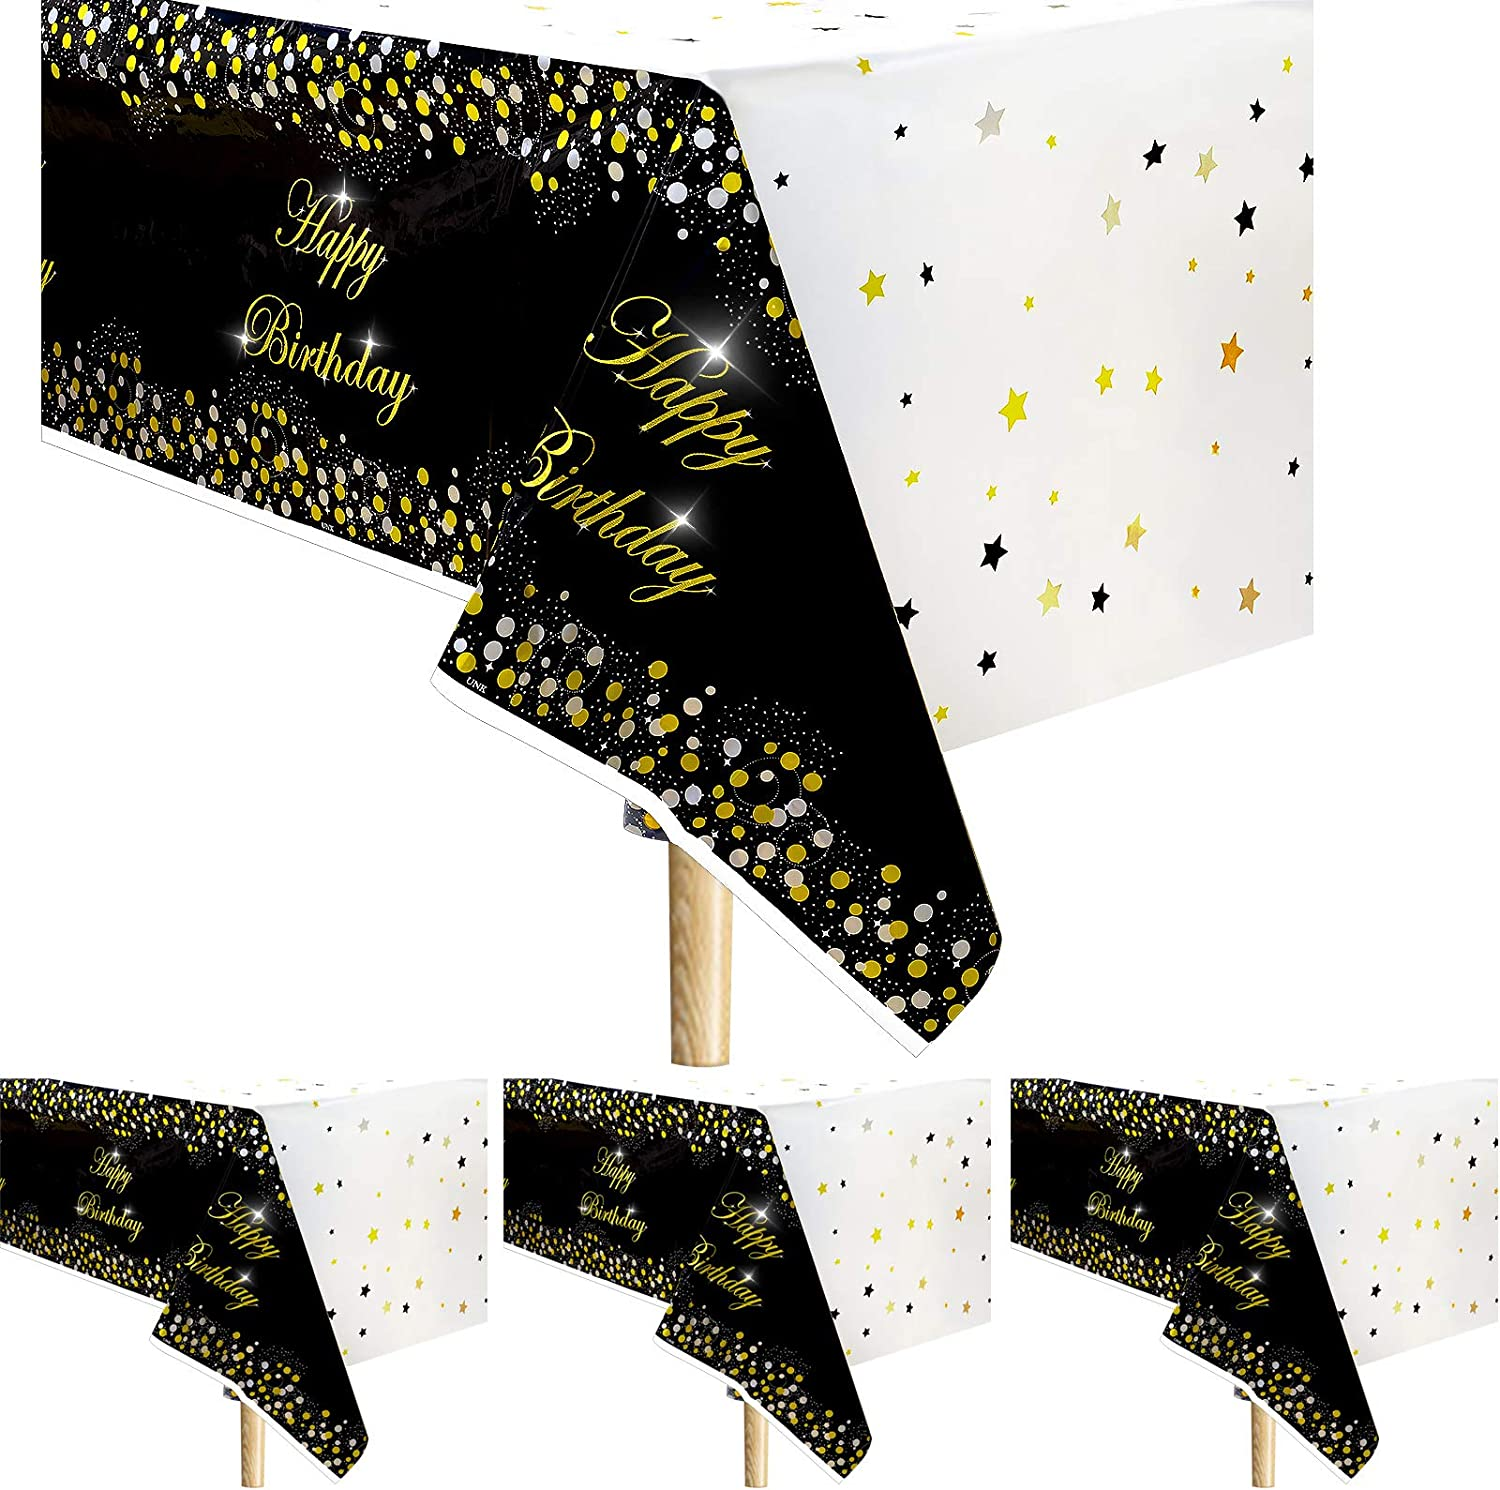 4 Pieces Happy Birthday Tablecloth Black Birthday Party Table Cover Black and Gold Dot Tablecloth Plastic Disposable Rectangle Table Cover for Birthday Party Decor Accessories